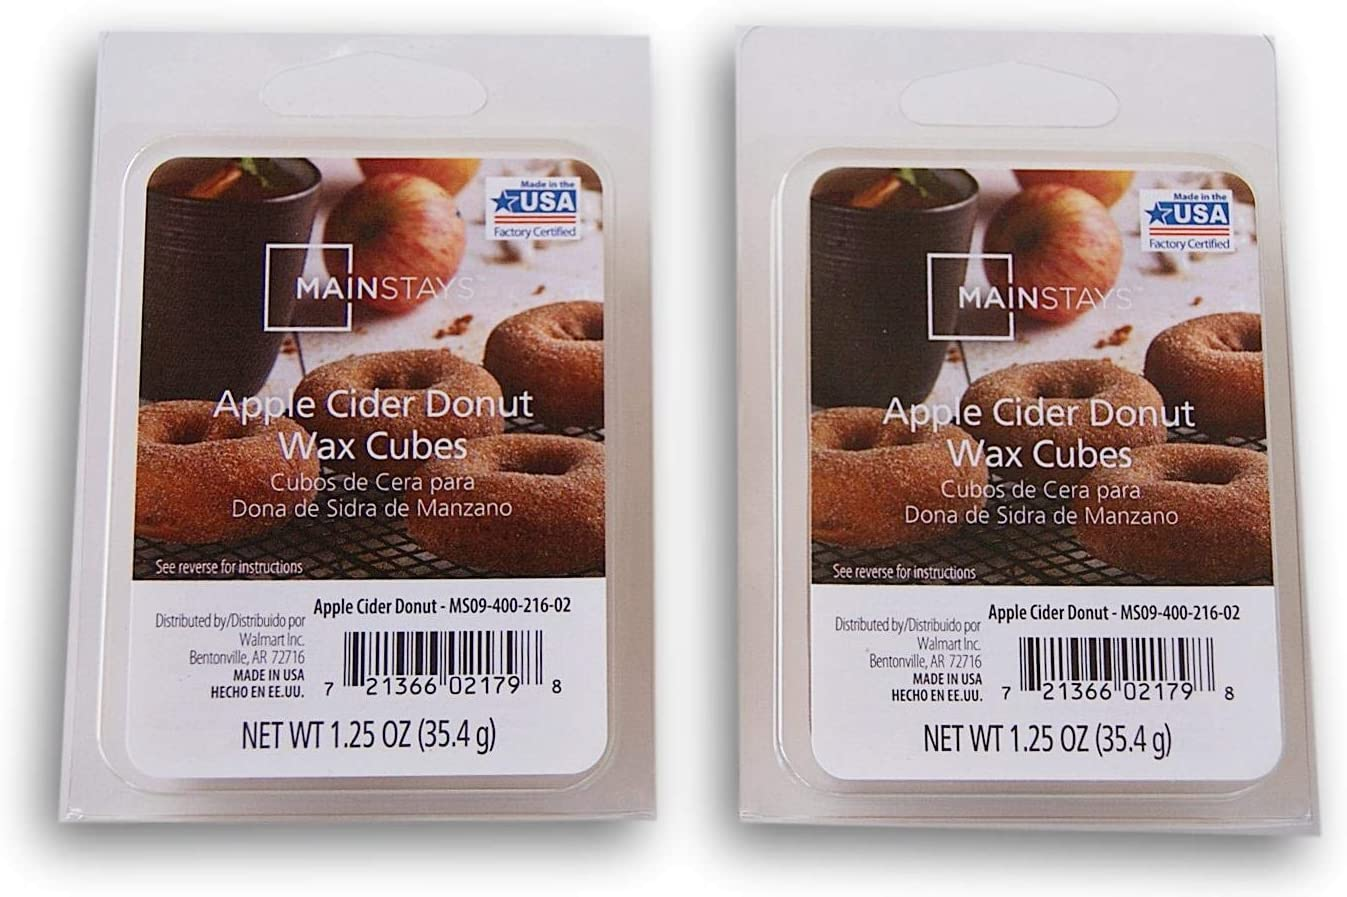 Seasonal Decor Mainstays Autumn Scents Wax Cubes Bundle - 2 Packs of Apple Cider Donut Wax Cubes